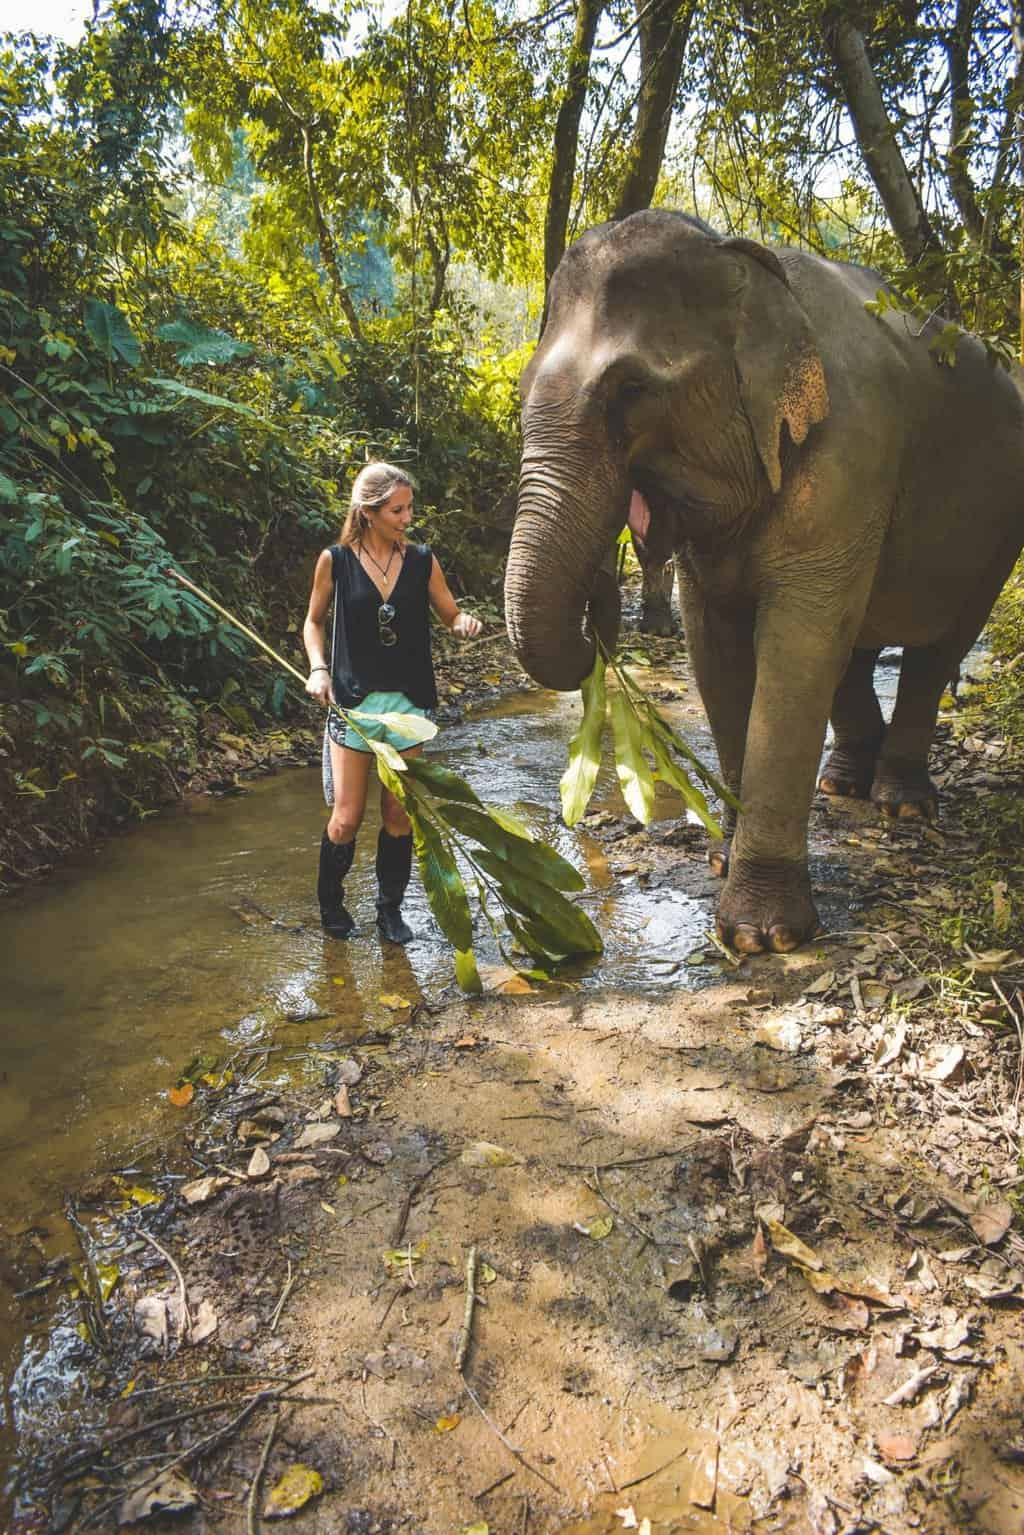 Ethical elephant experience in Luang Prabang